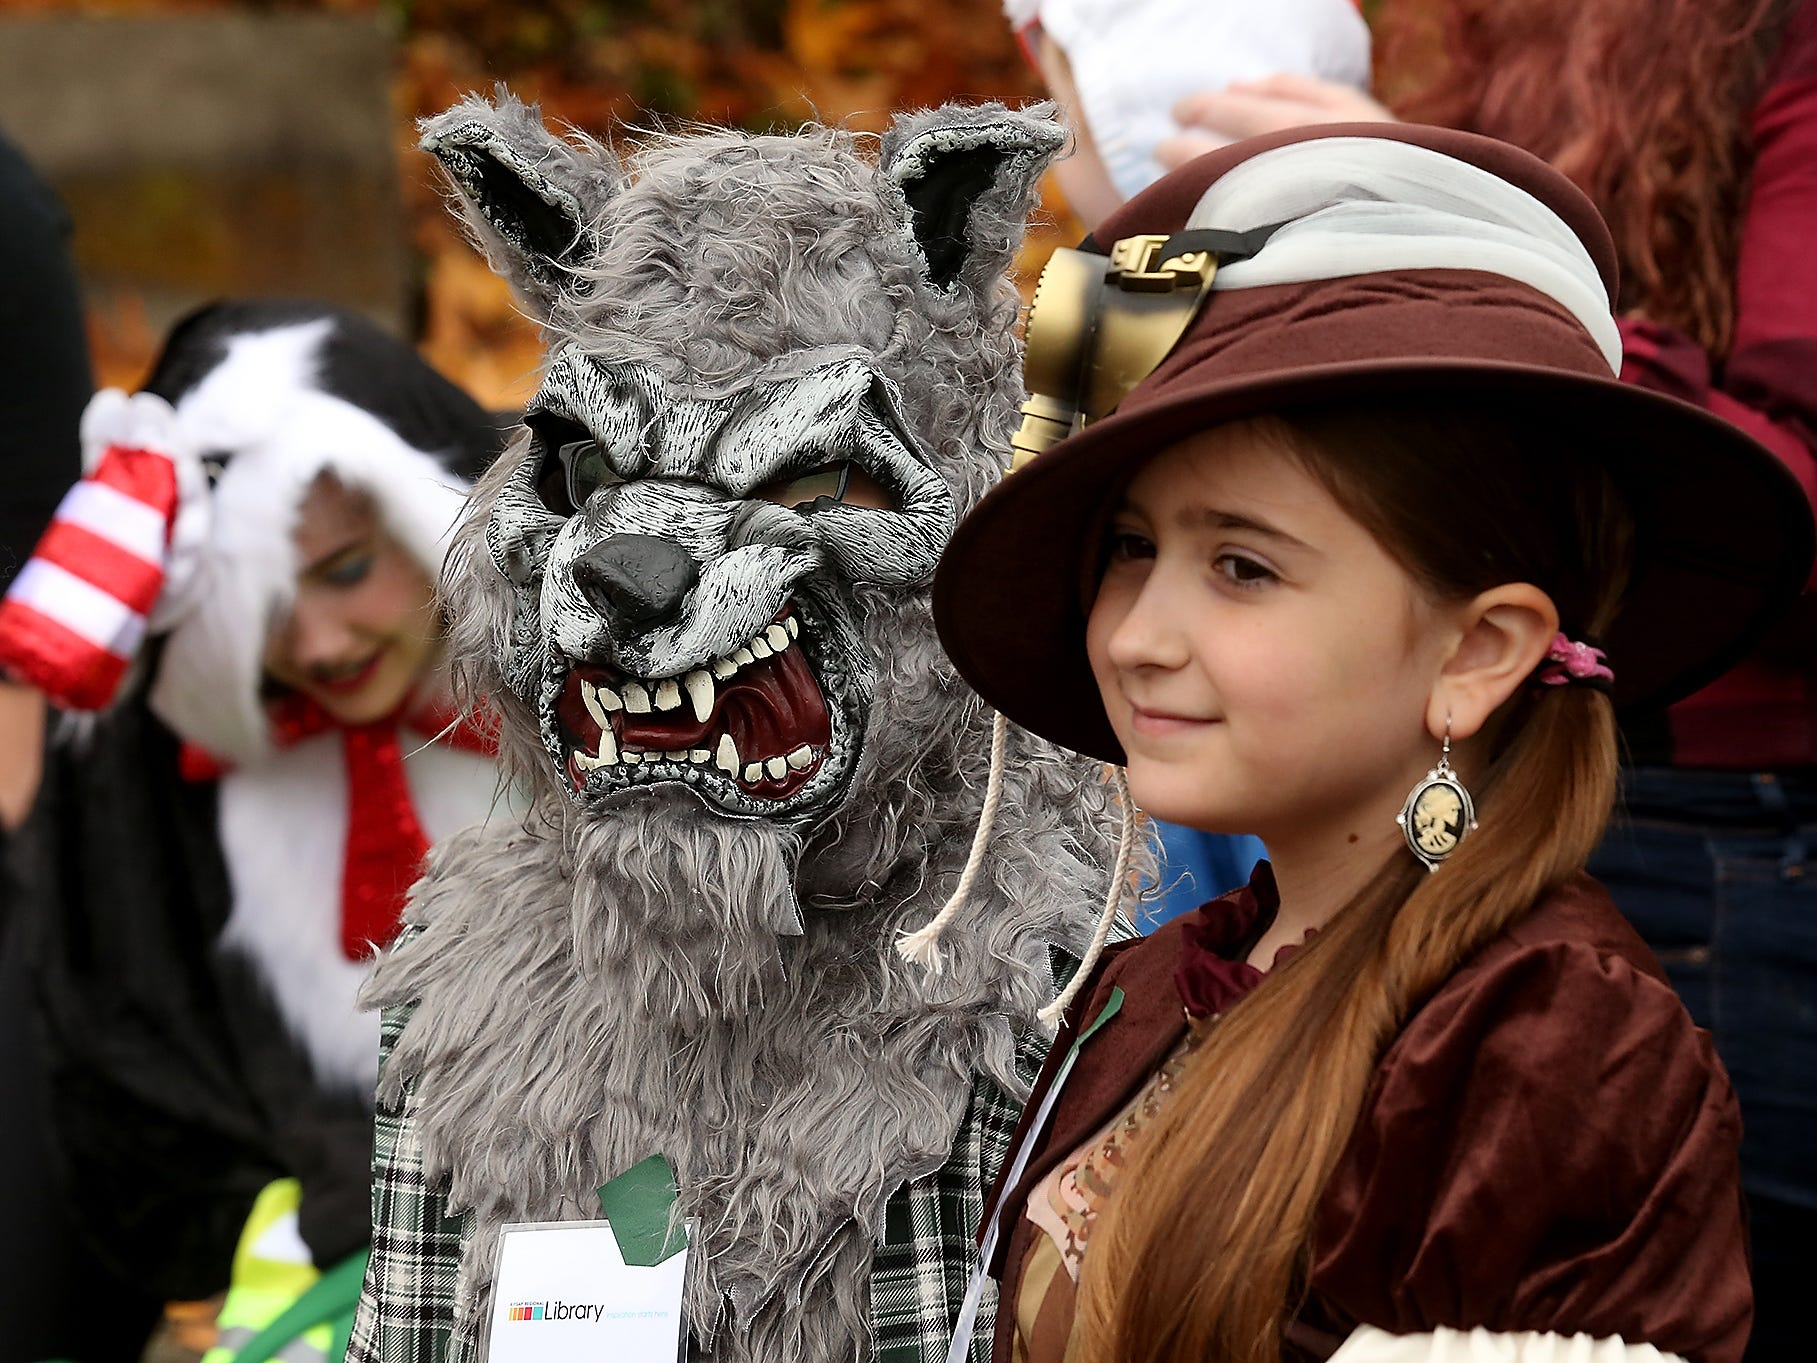 Siblings James and Alexis Rainbolt take part in the costume contest during the Halloween Spookfest in downtown Port Orchard on Saturday, October 27, 2018.